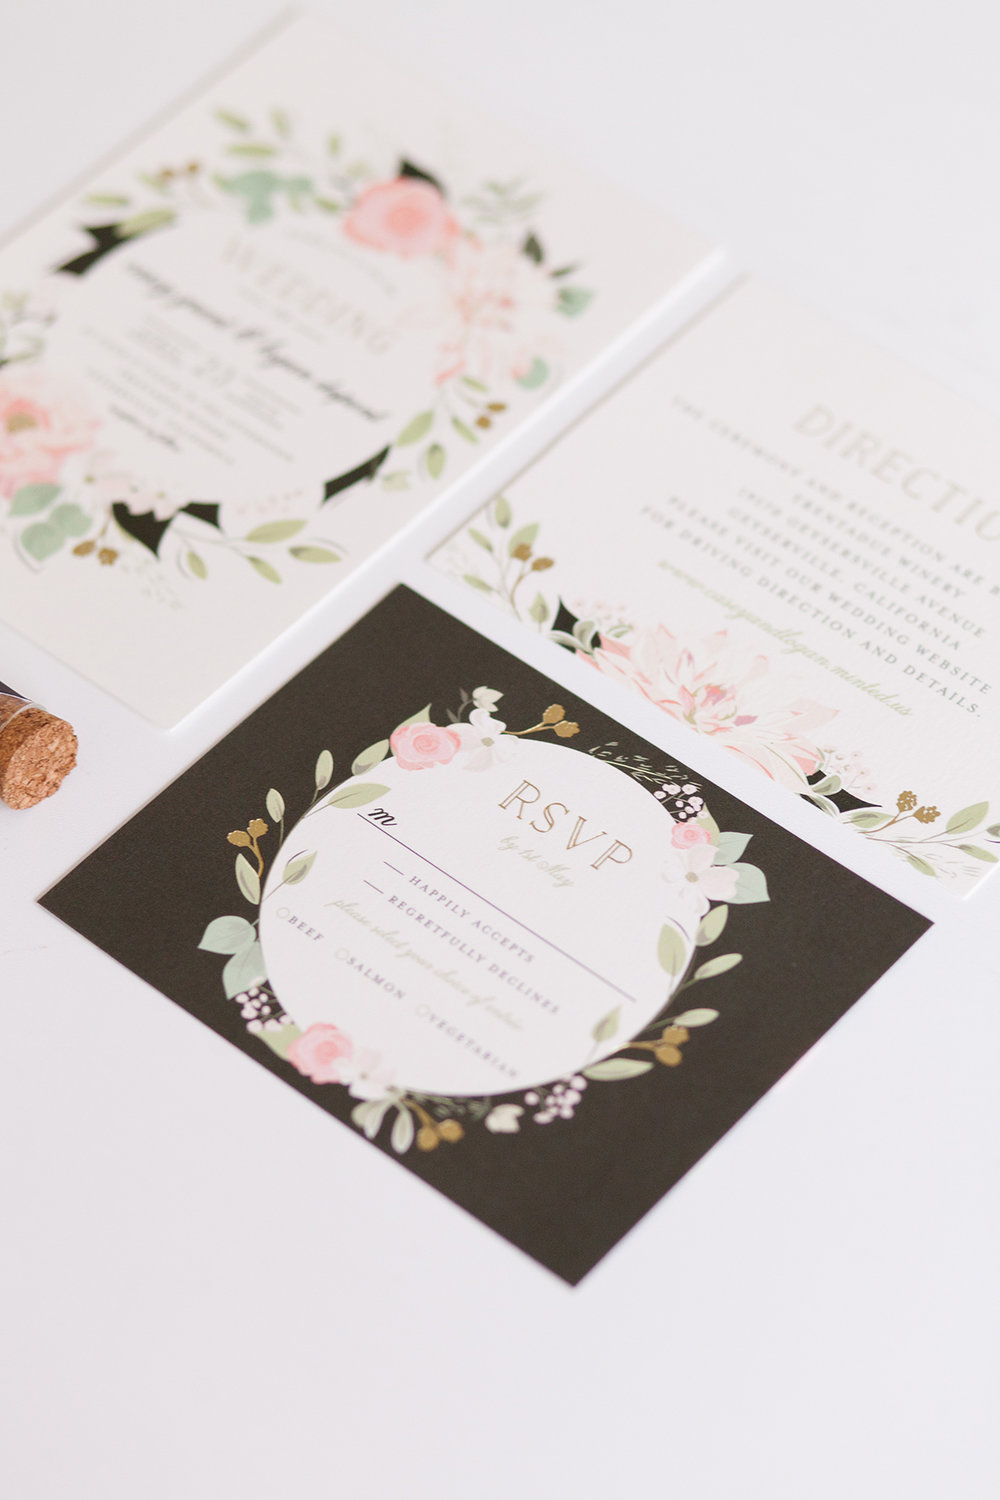 Floral + Greenery Wedding Invitations - Minted - Industrial Warehouse Wedding -- The Overwhelmed Bride - Wedding Blog